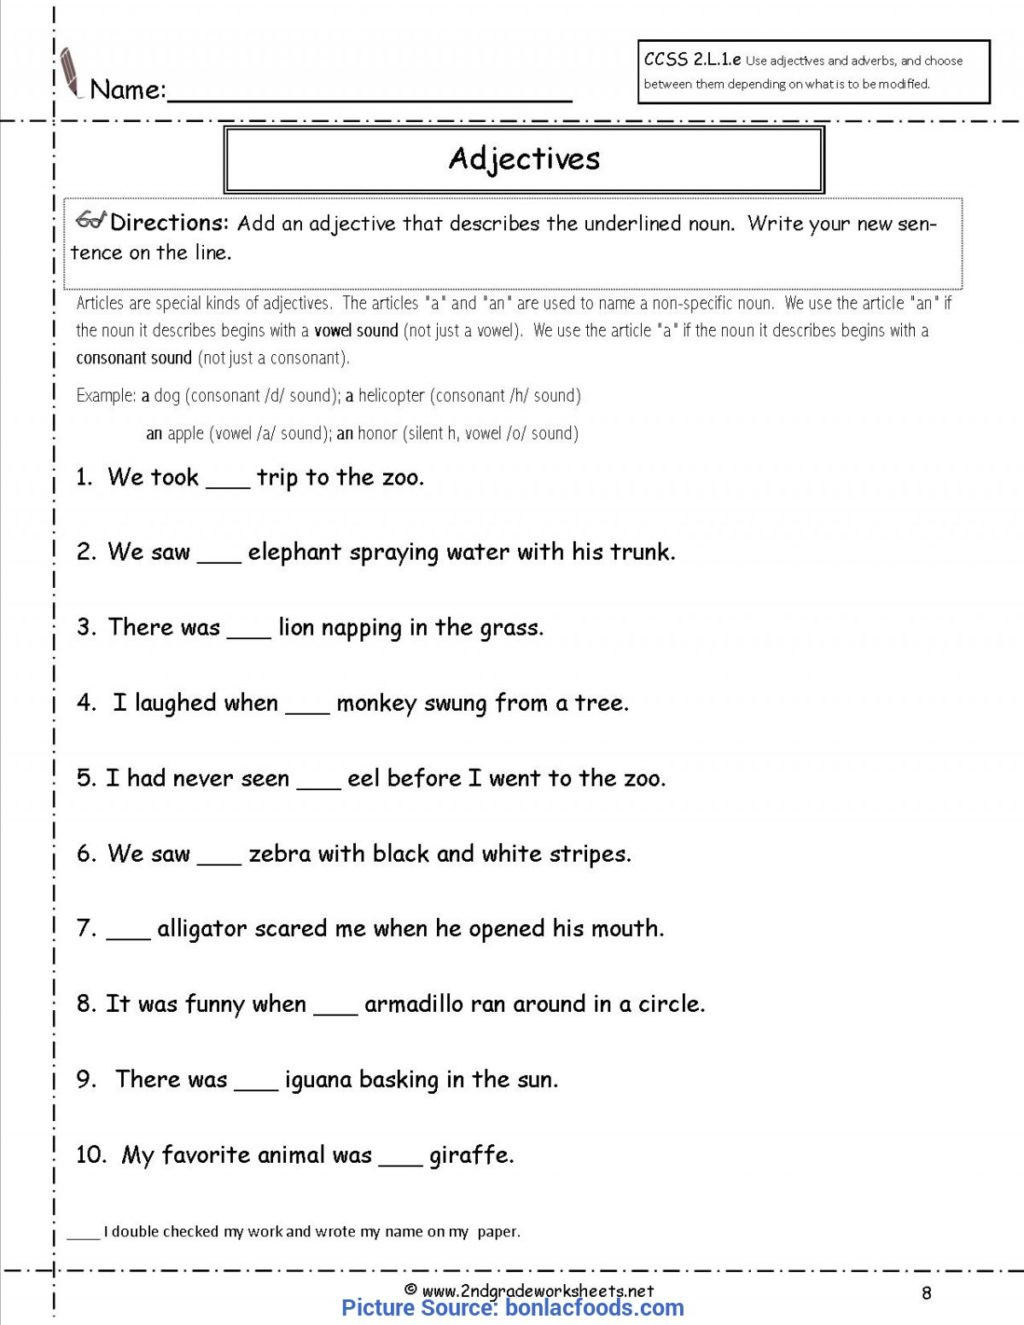 Adjectives Worksheets 3rd Grade Worksheet Valuable 2nd Grade Lesson Plans Adjectives